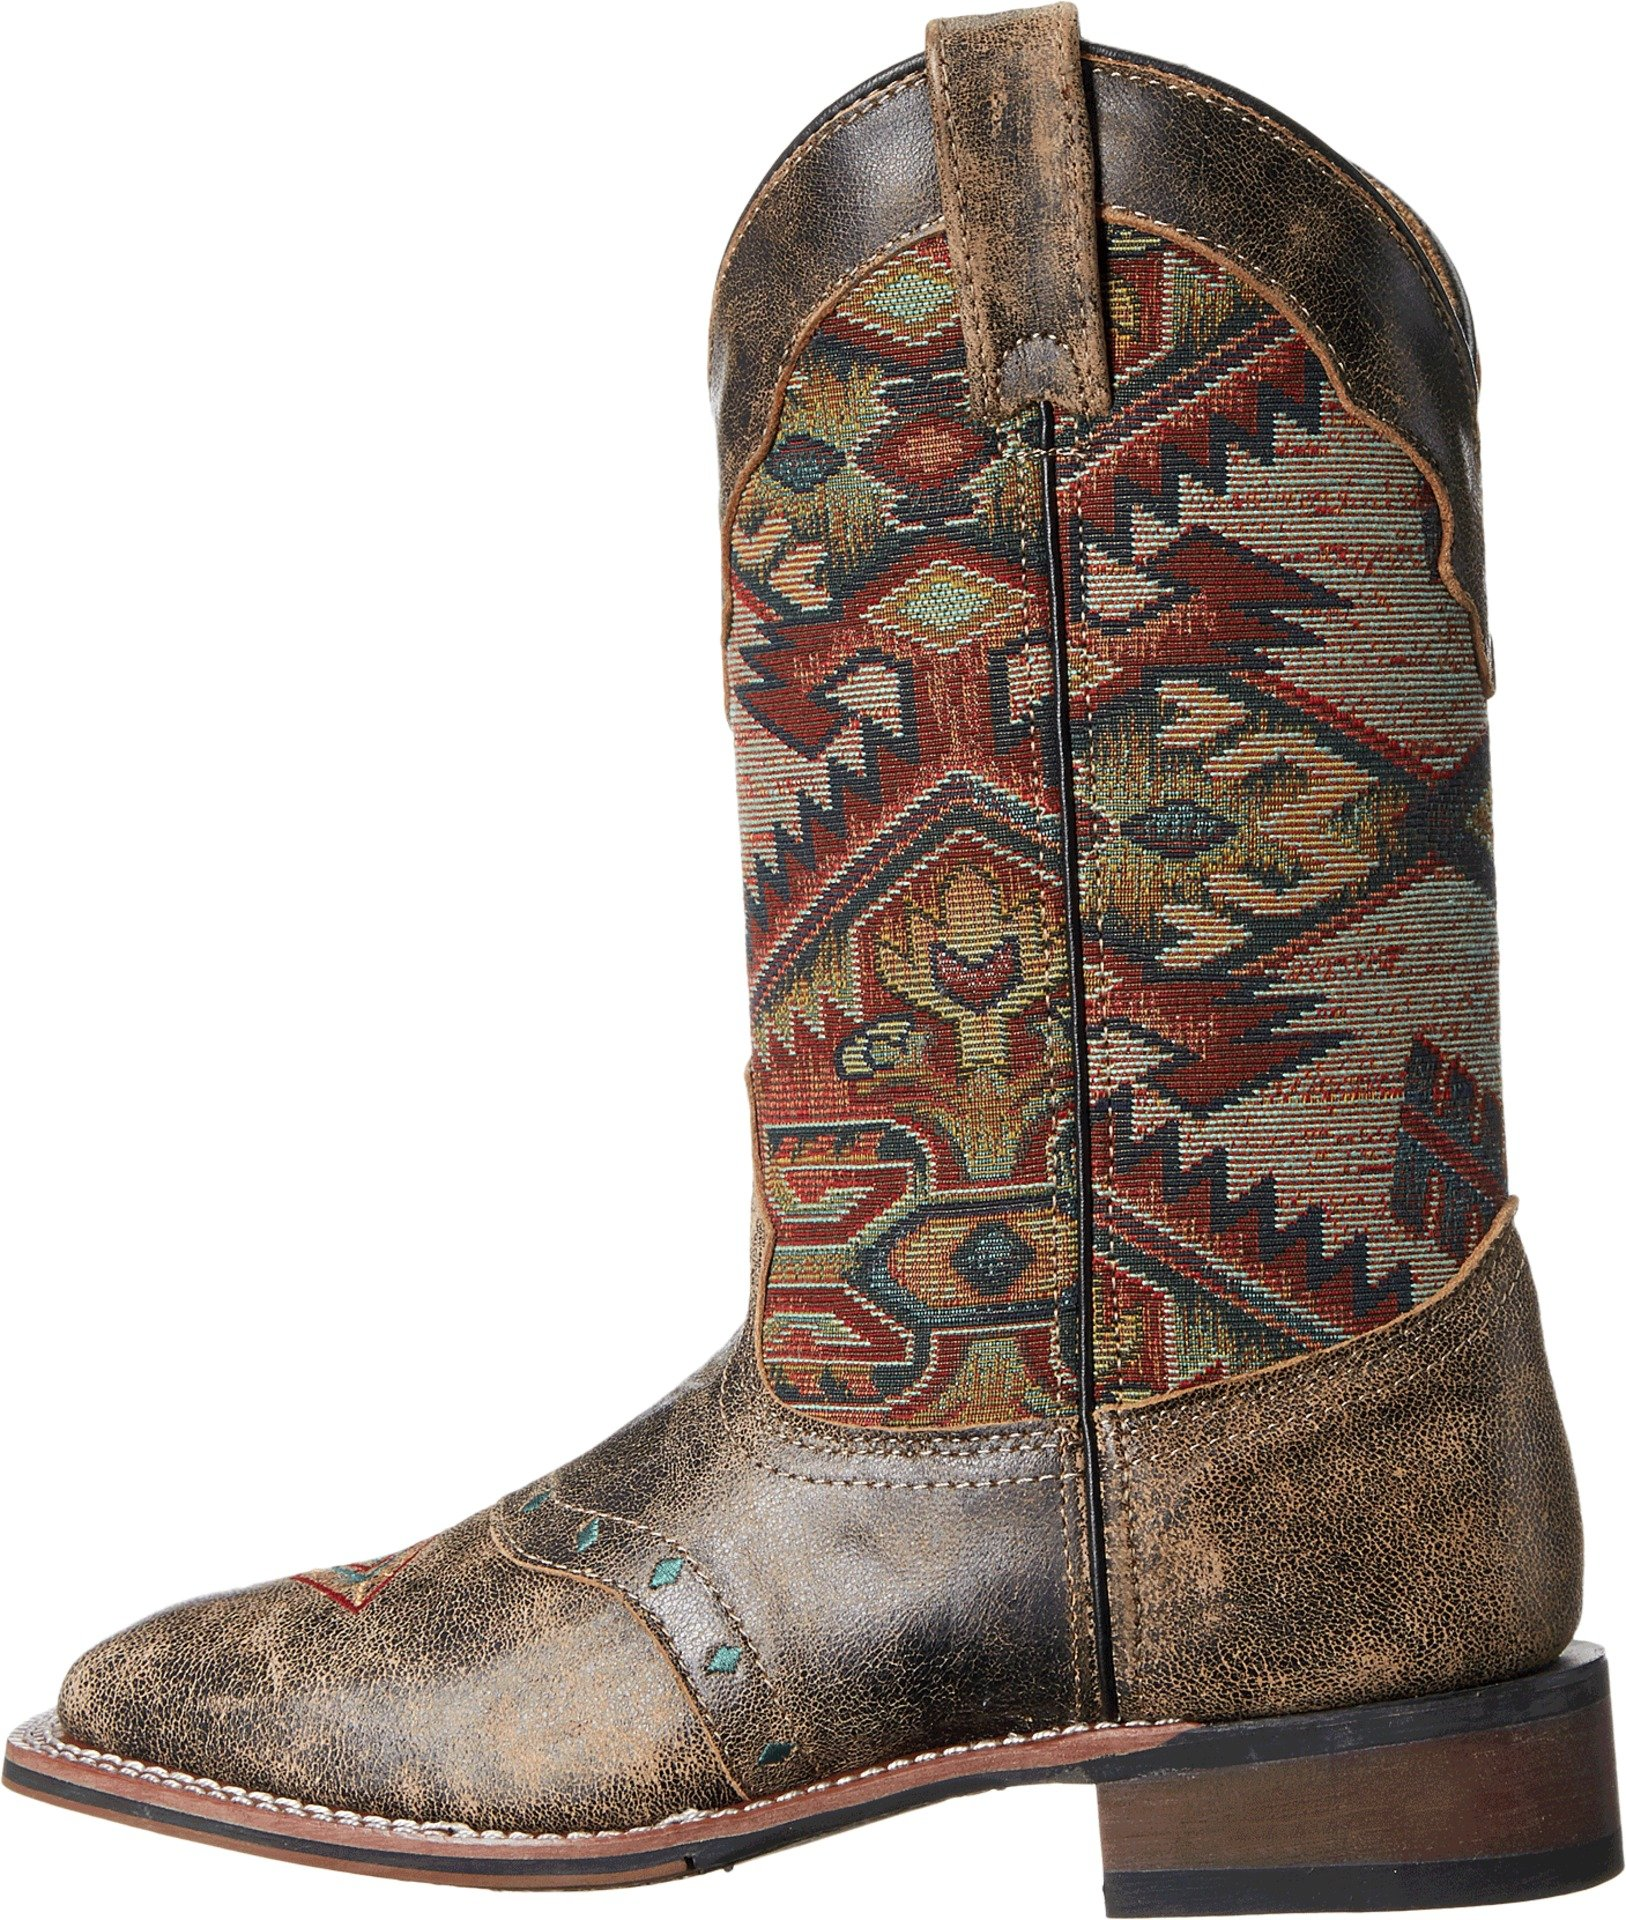 Laredo Women's Taupe With Aztec Top Boot Square Toe Taupe 7 M by Laredo (Image #2)